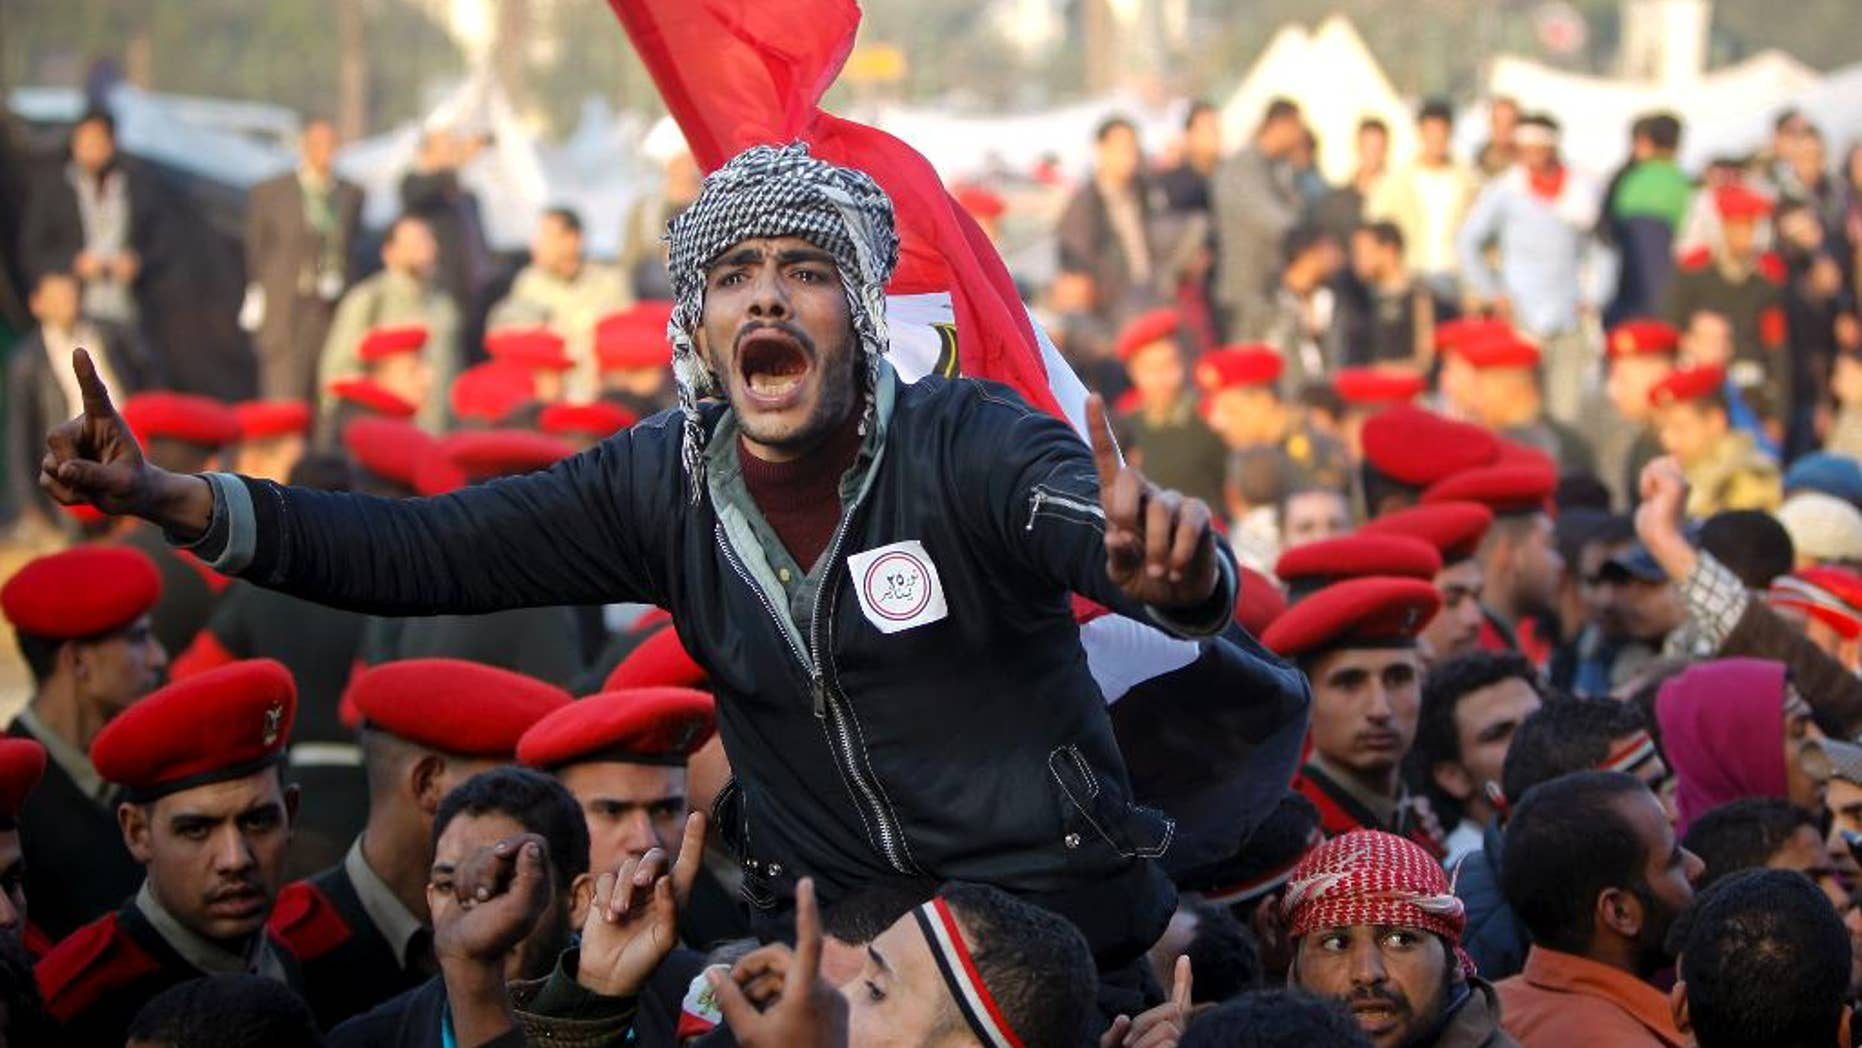 FILE - In this Feb. 13, 2011 file photo, remaining Egyptian protesters shout slogans as they are surrounded by army soldiers trying to lead them away from Tahrir Square in Cairo, Egypt. Within days, a cheering world community was riveted to screens as Egypt's long-submissive people thronged to Cairo's Tahrir Square, braving bullets and refusing to leave until veteran ruler Hosni Mubarak stepped down. (AP Photo/Tara Todras-Whitehill, File)